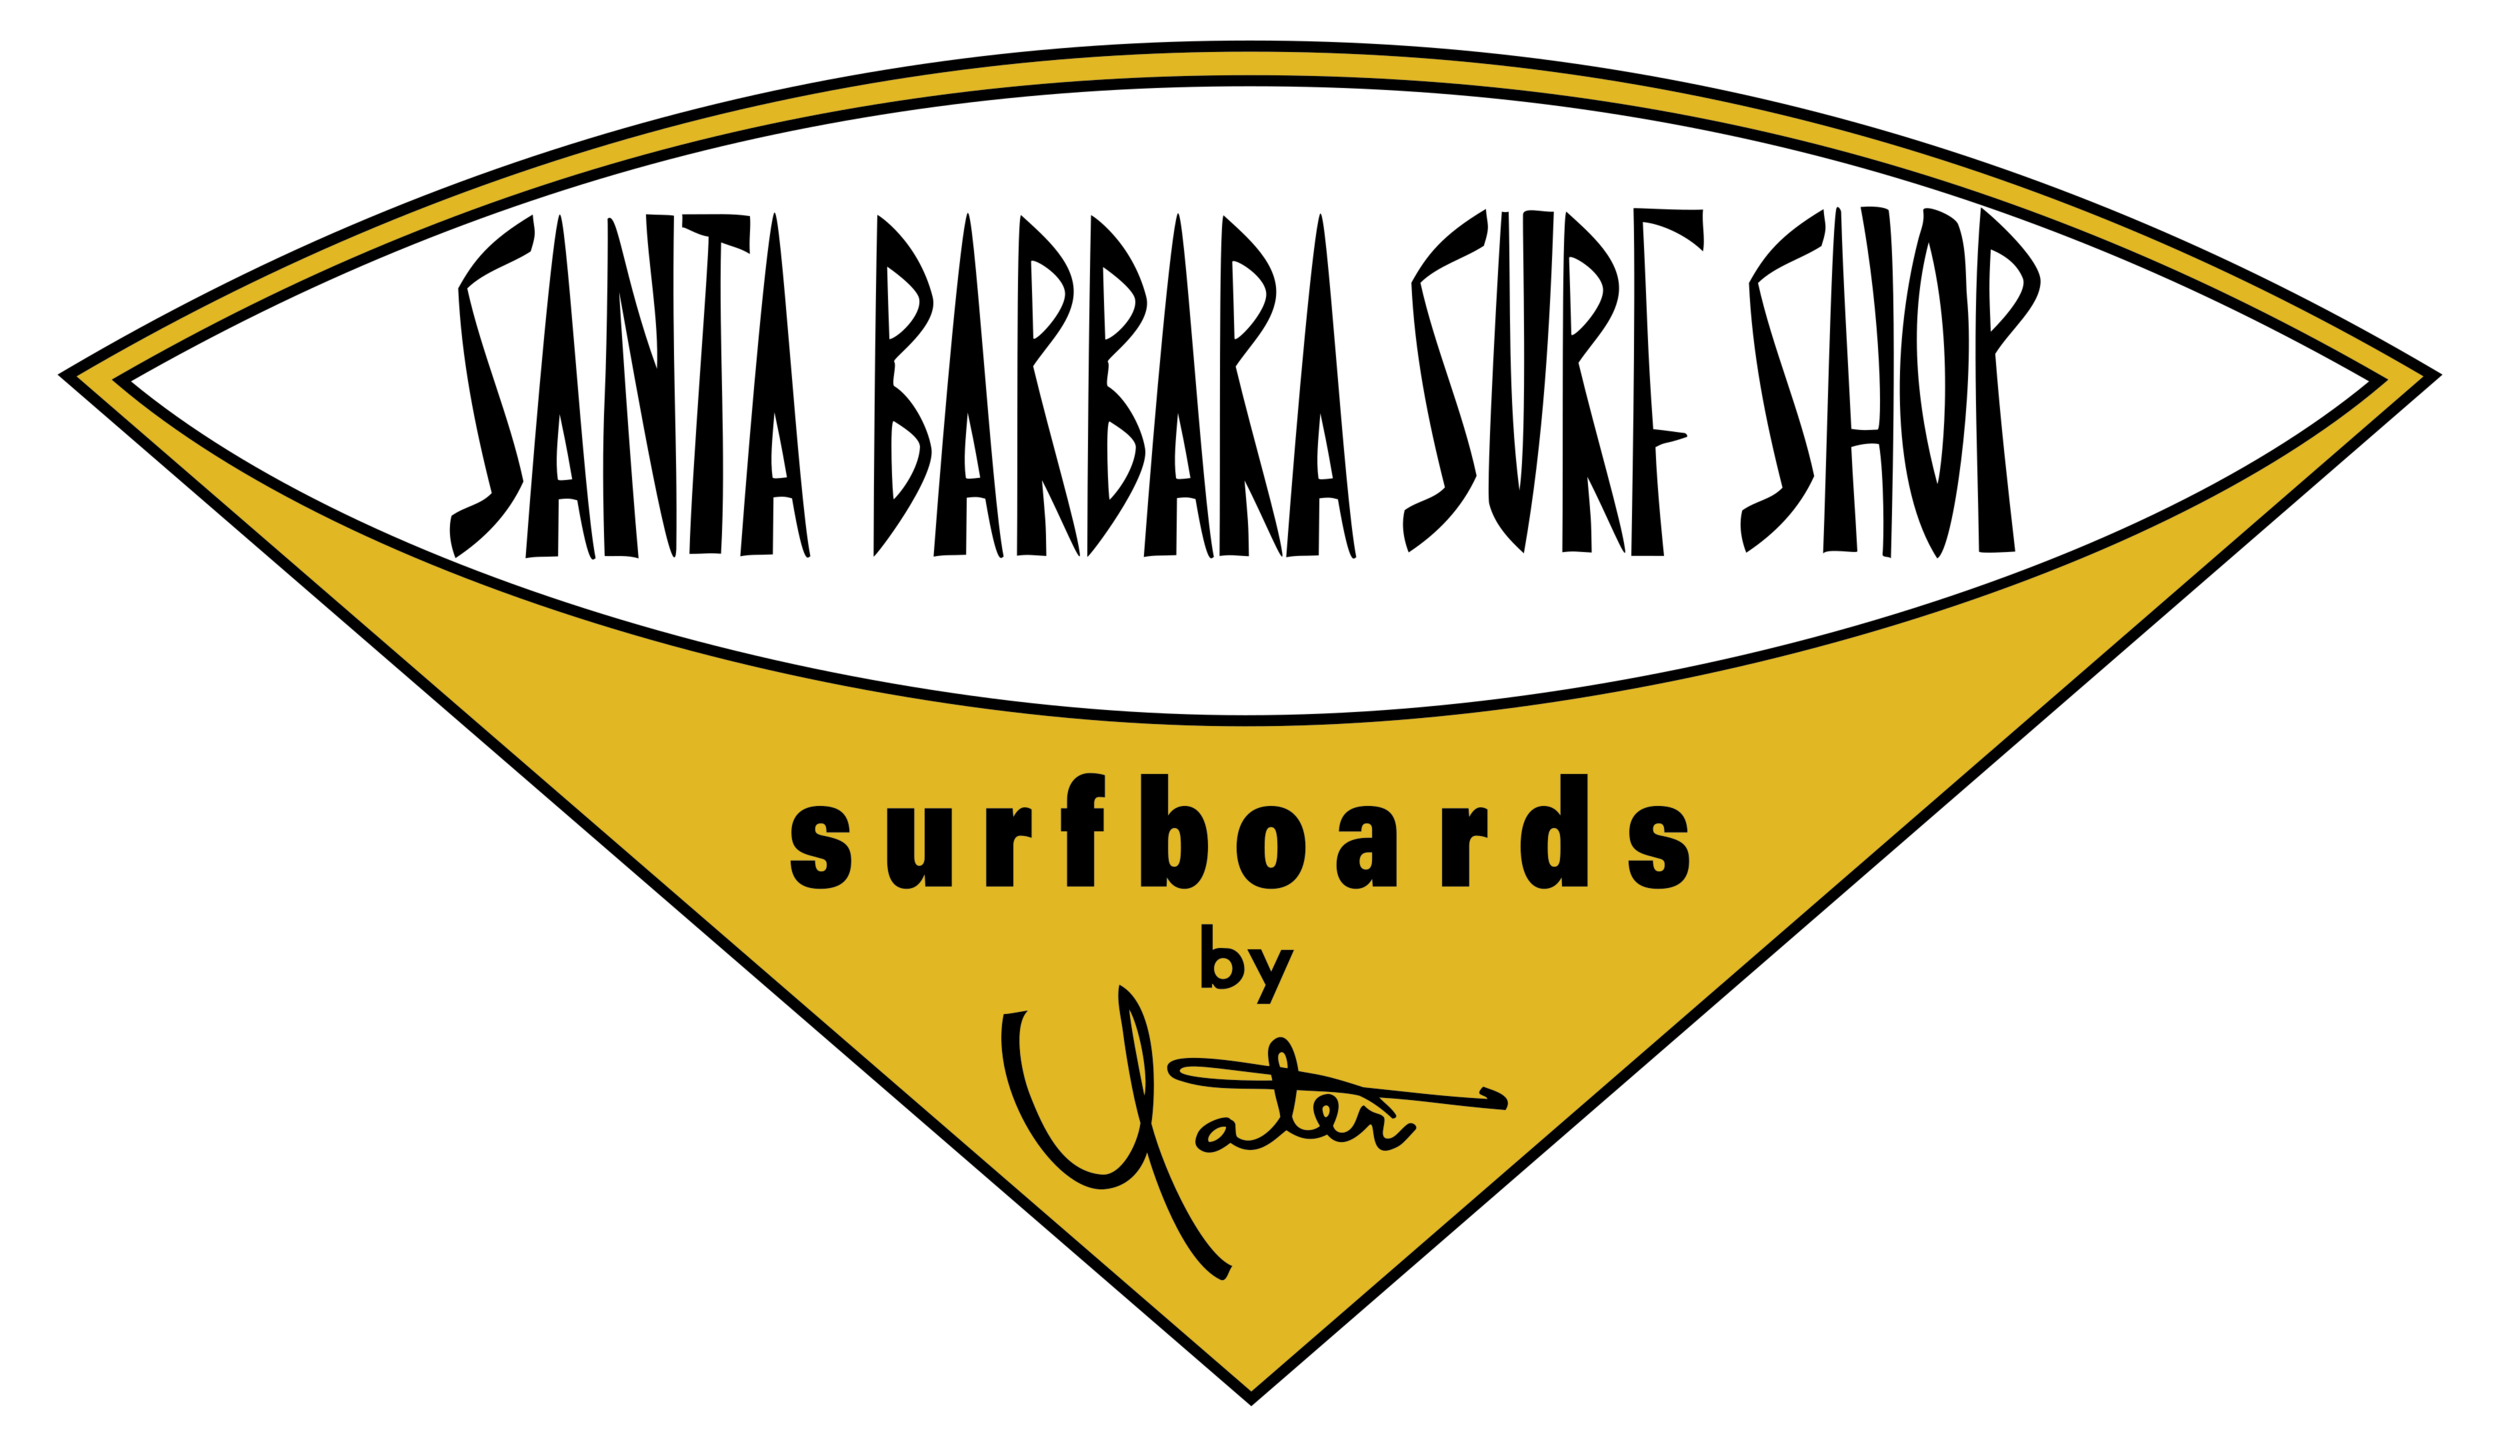 Santa-Barbara-Surf-Shop-2015-3clr-final.png